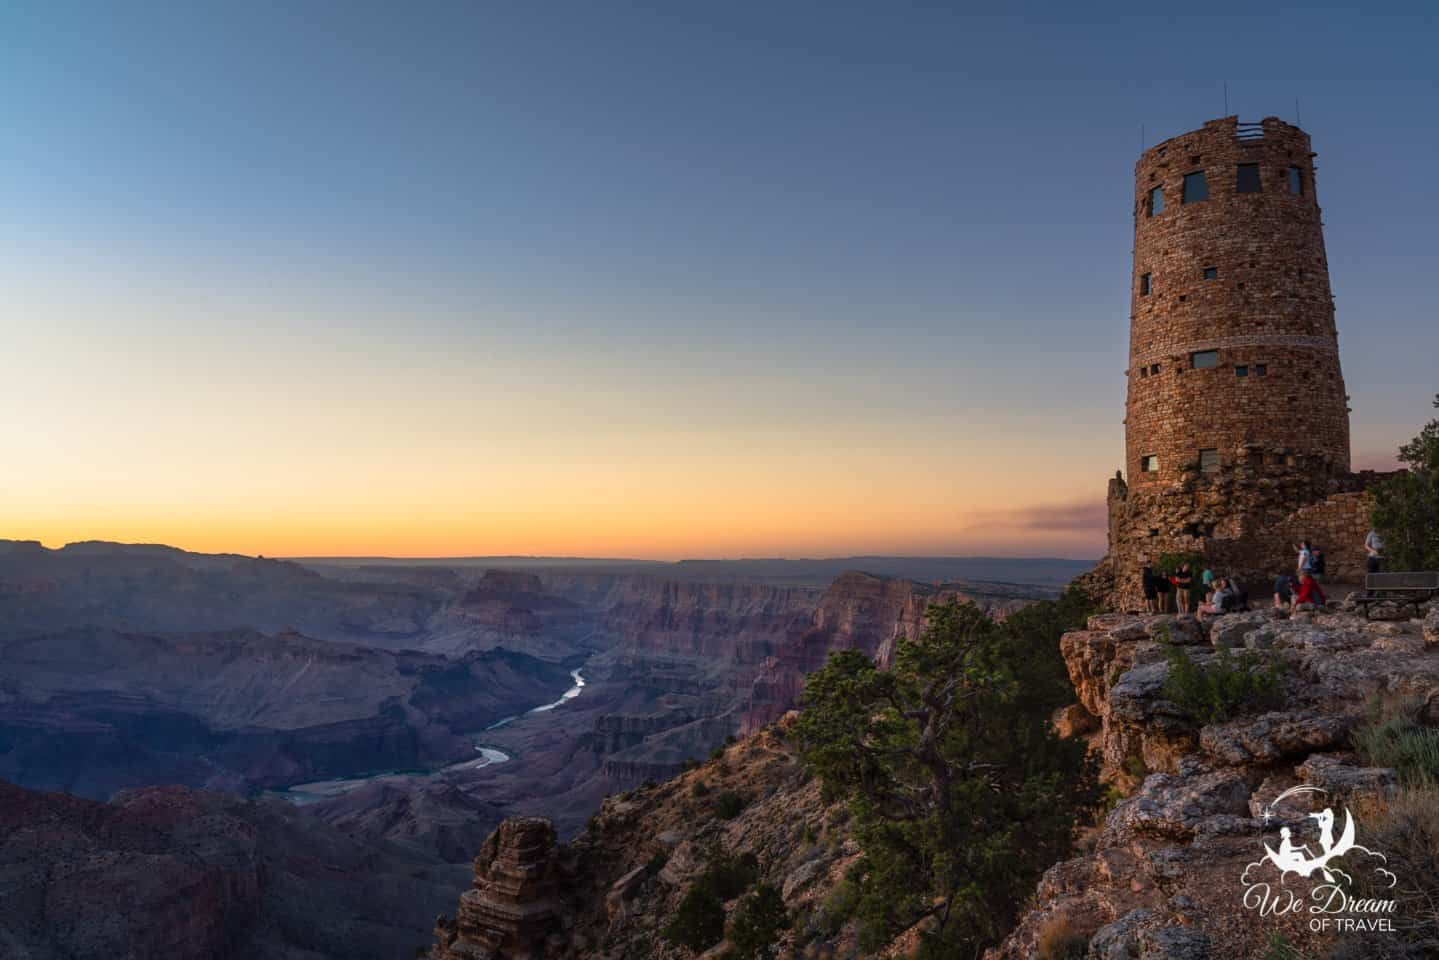 Get your one day in Grand Canyon started right by feeding your eyes and stomach with breakfast at Desert View Watchtower.